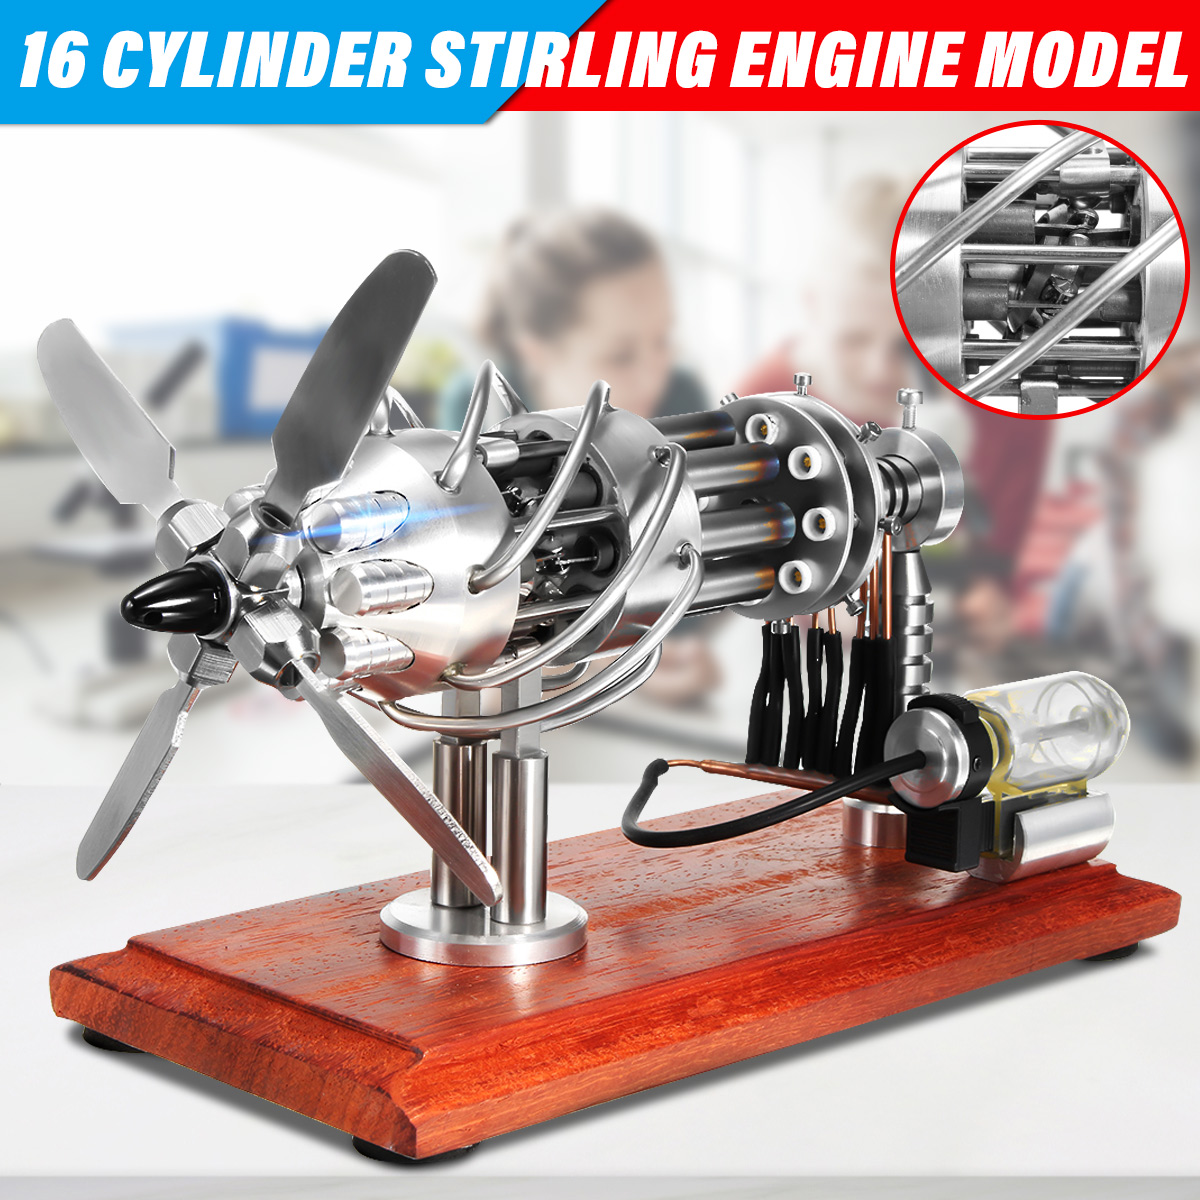 16 Cylinder Hot Air Stirling Engine Motor Model Creative Motor Steam Power Educational Toy